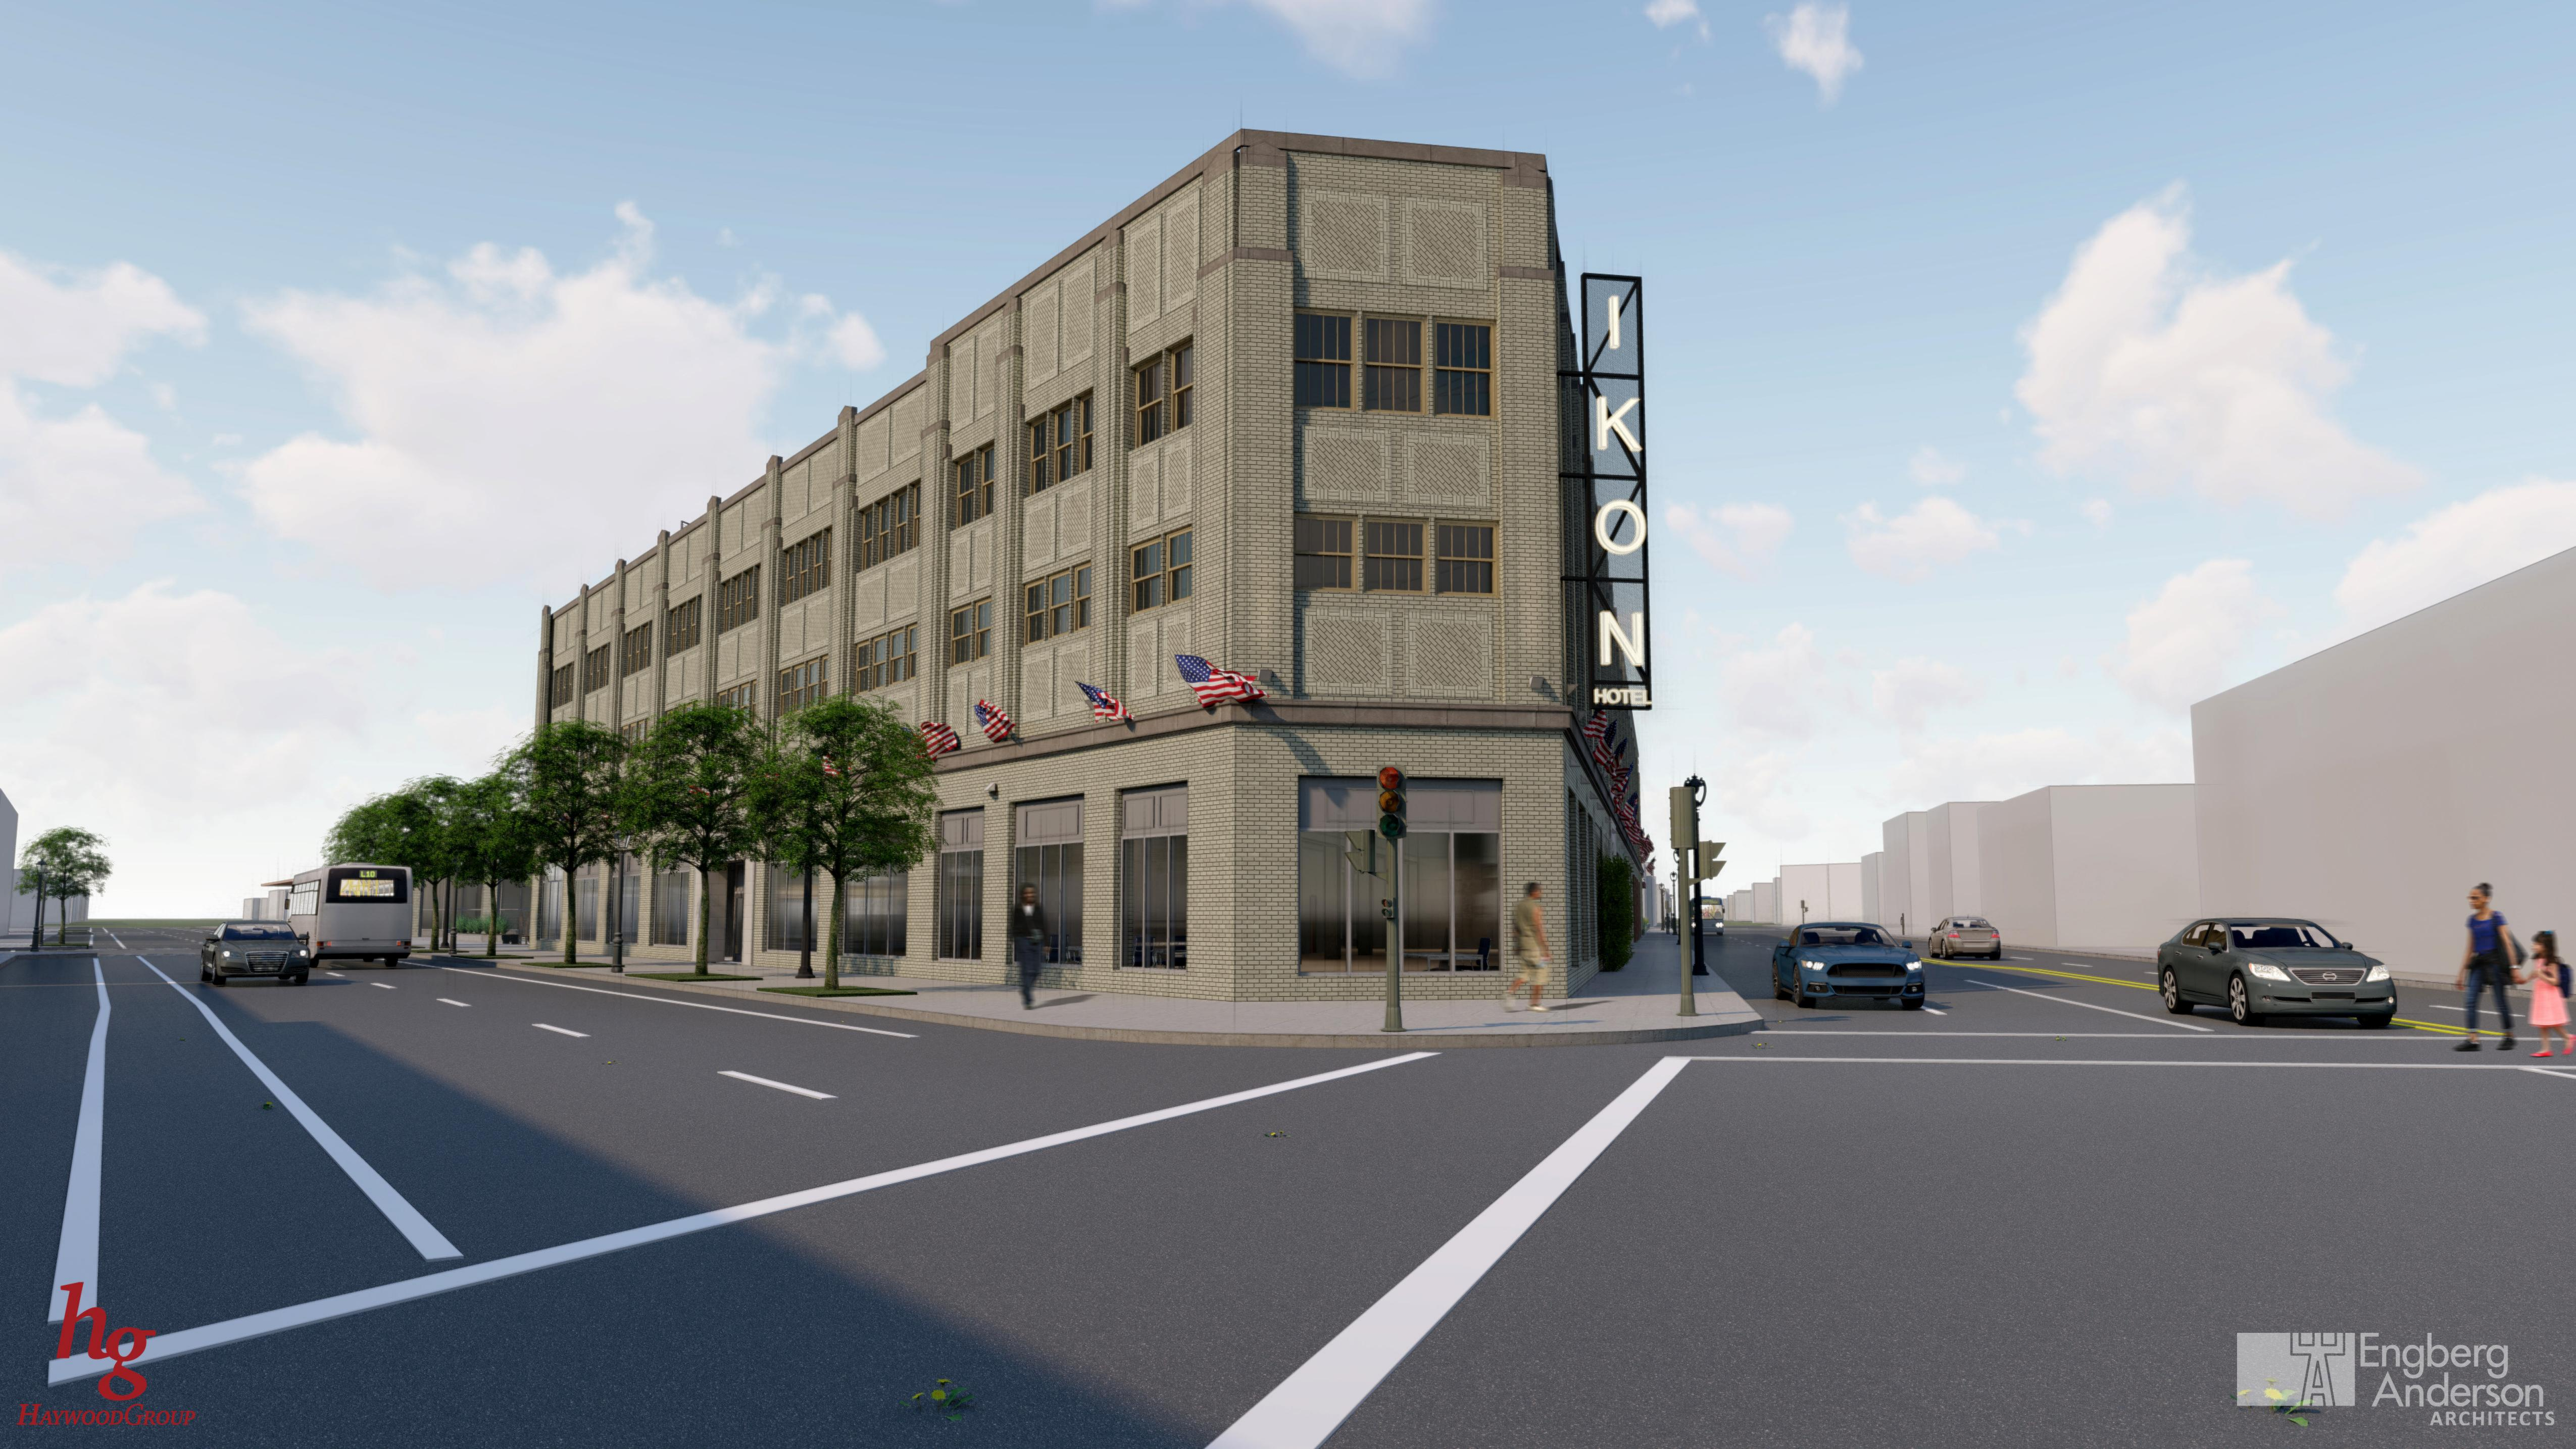 Ikon Hotel. Rendering by Engberg Anderson Architects.